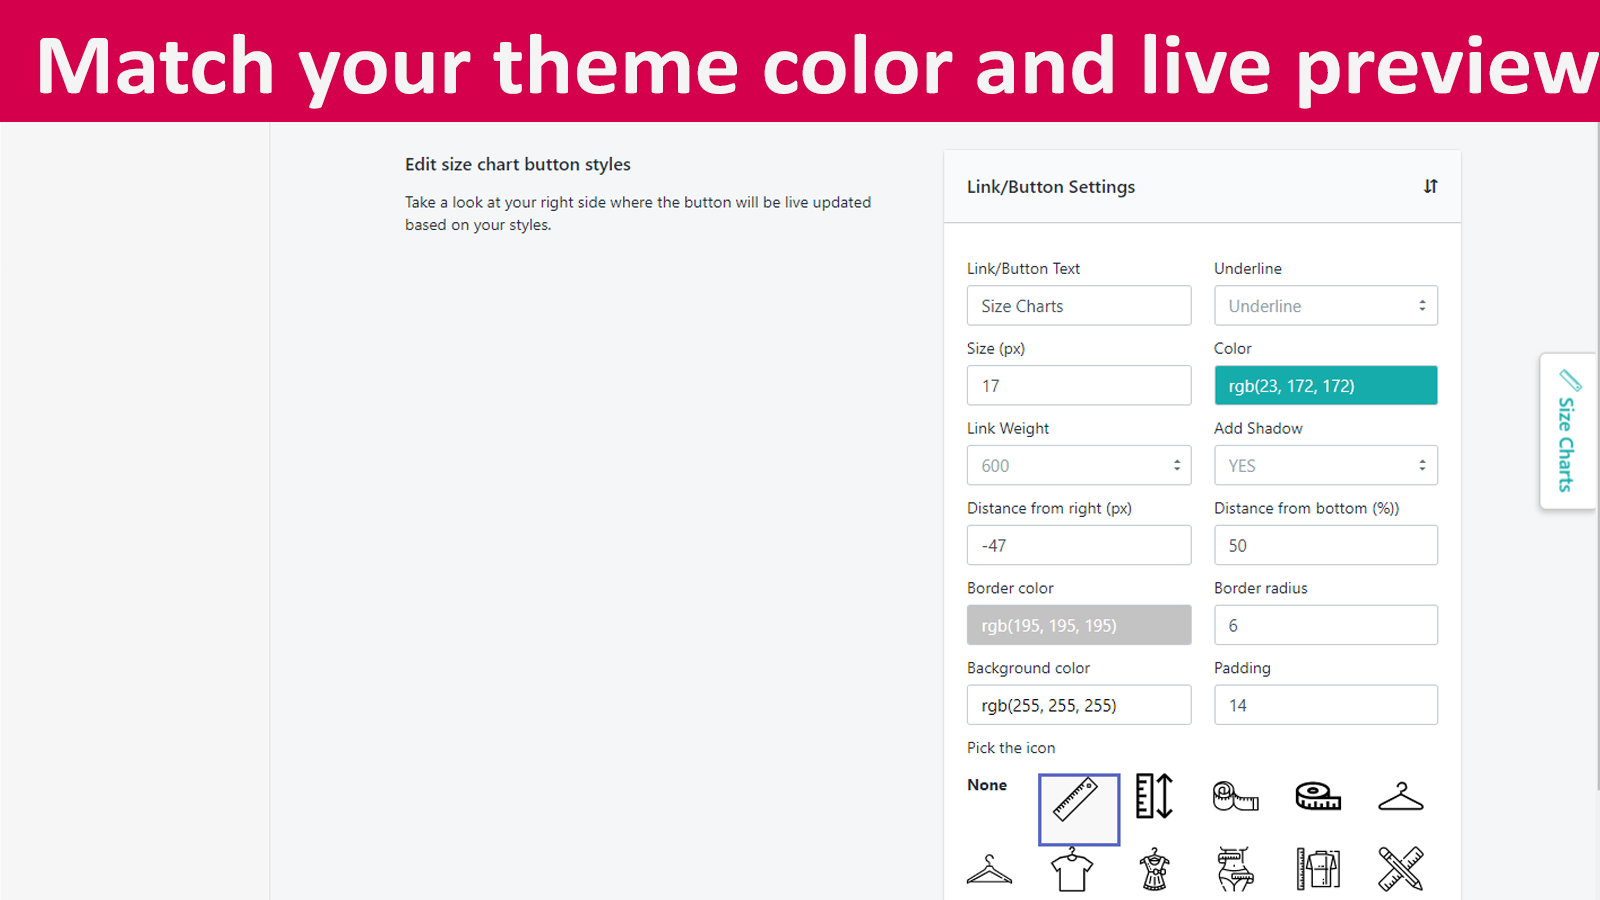 Match your theme styles with link/button full customization